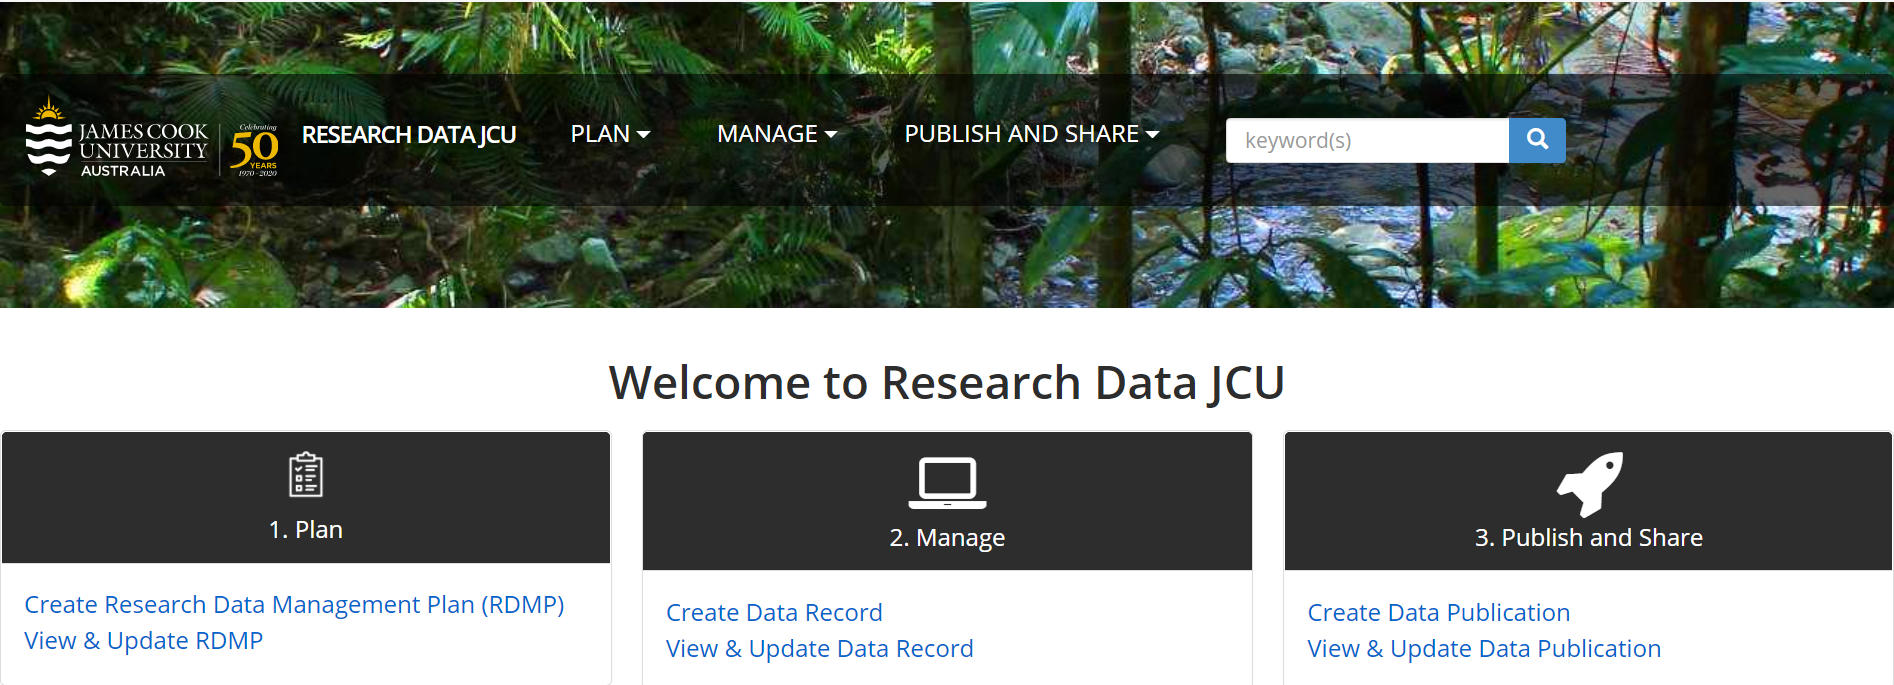 Research Data JCU Banner (logged in)